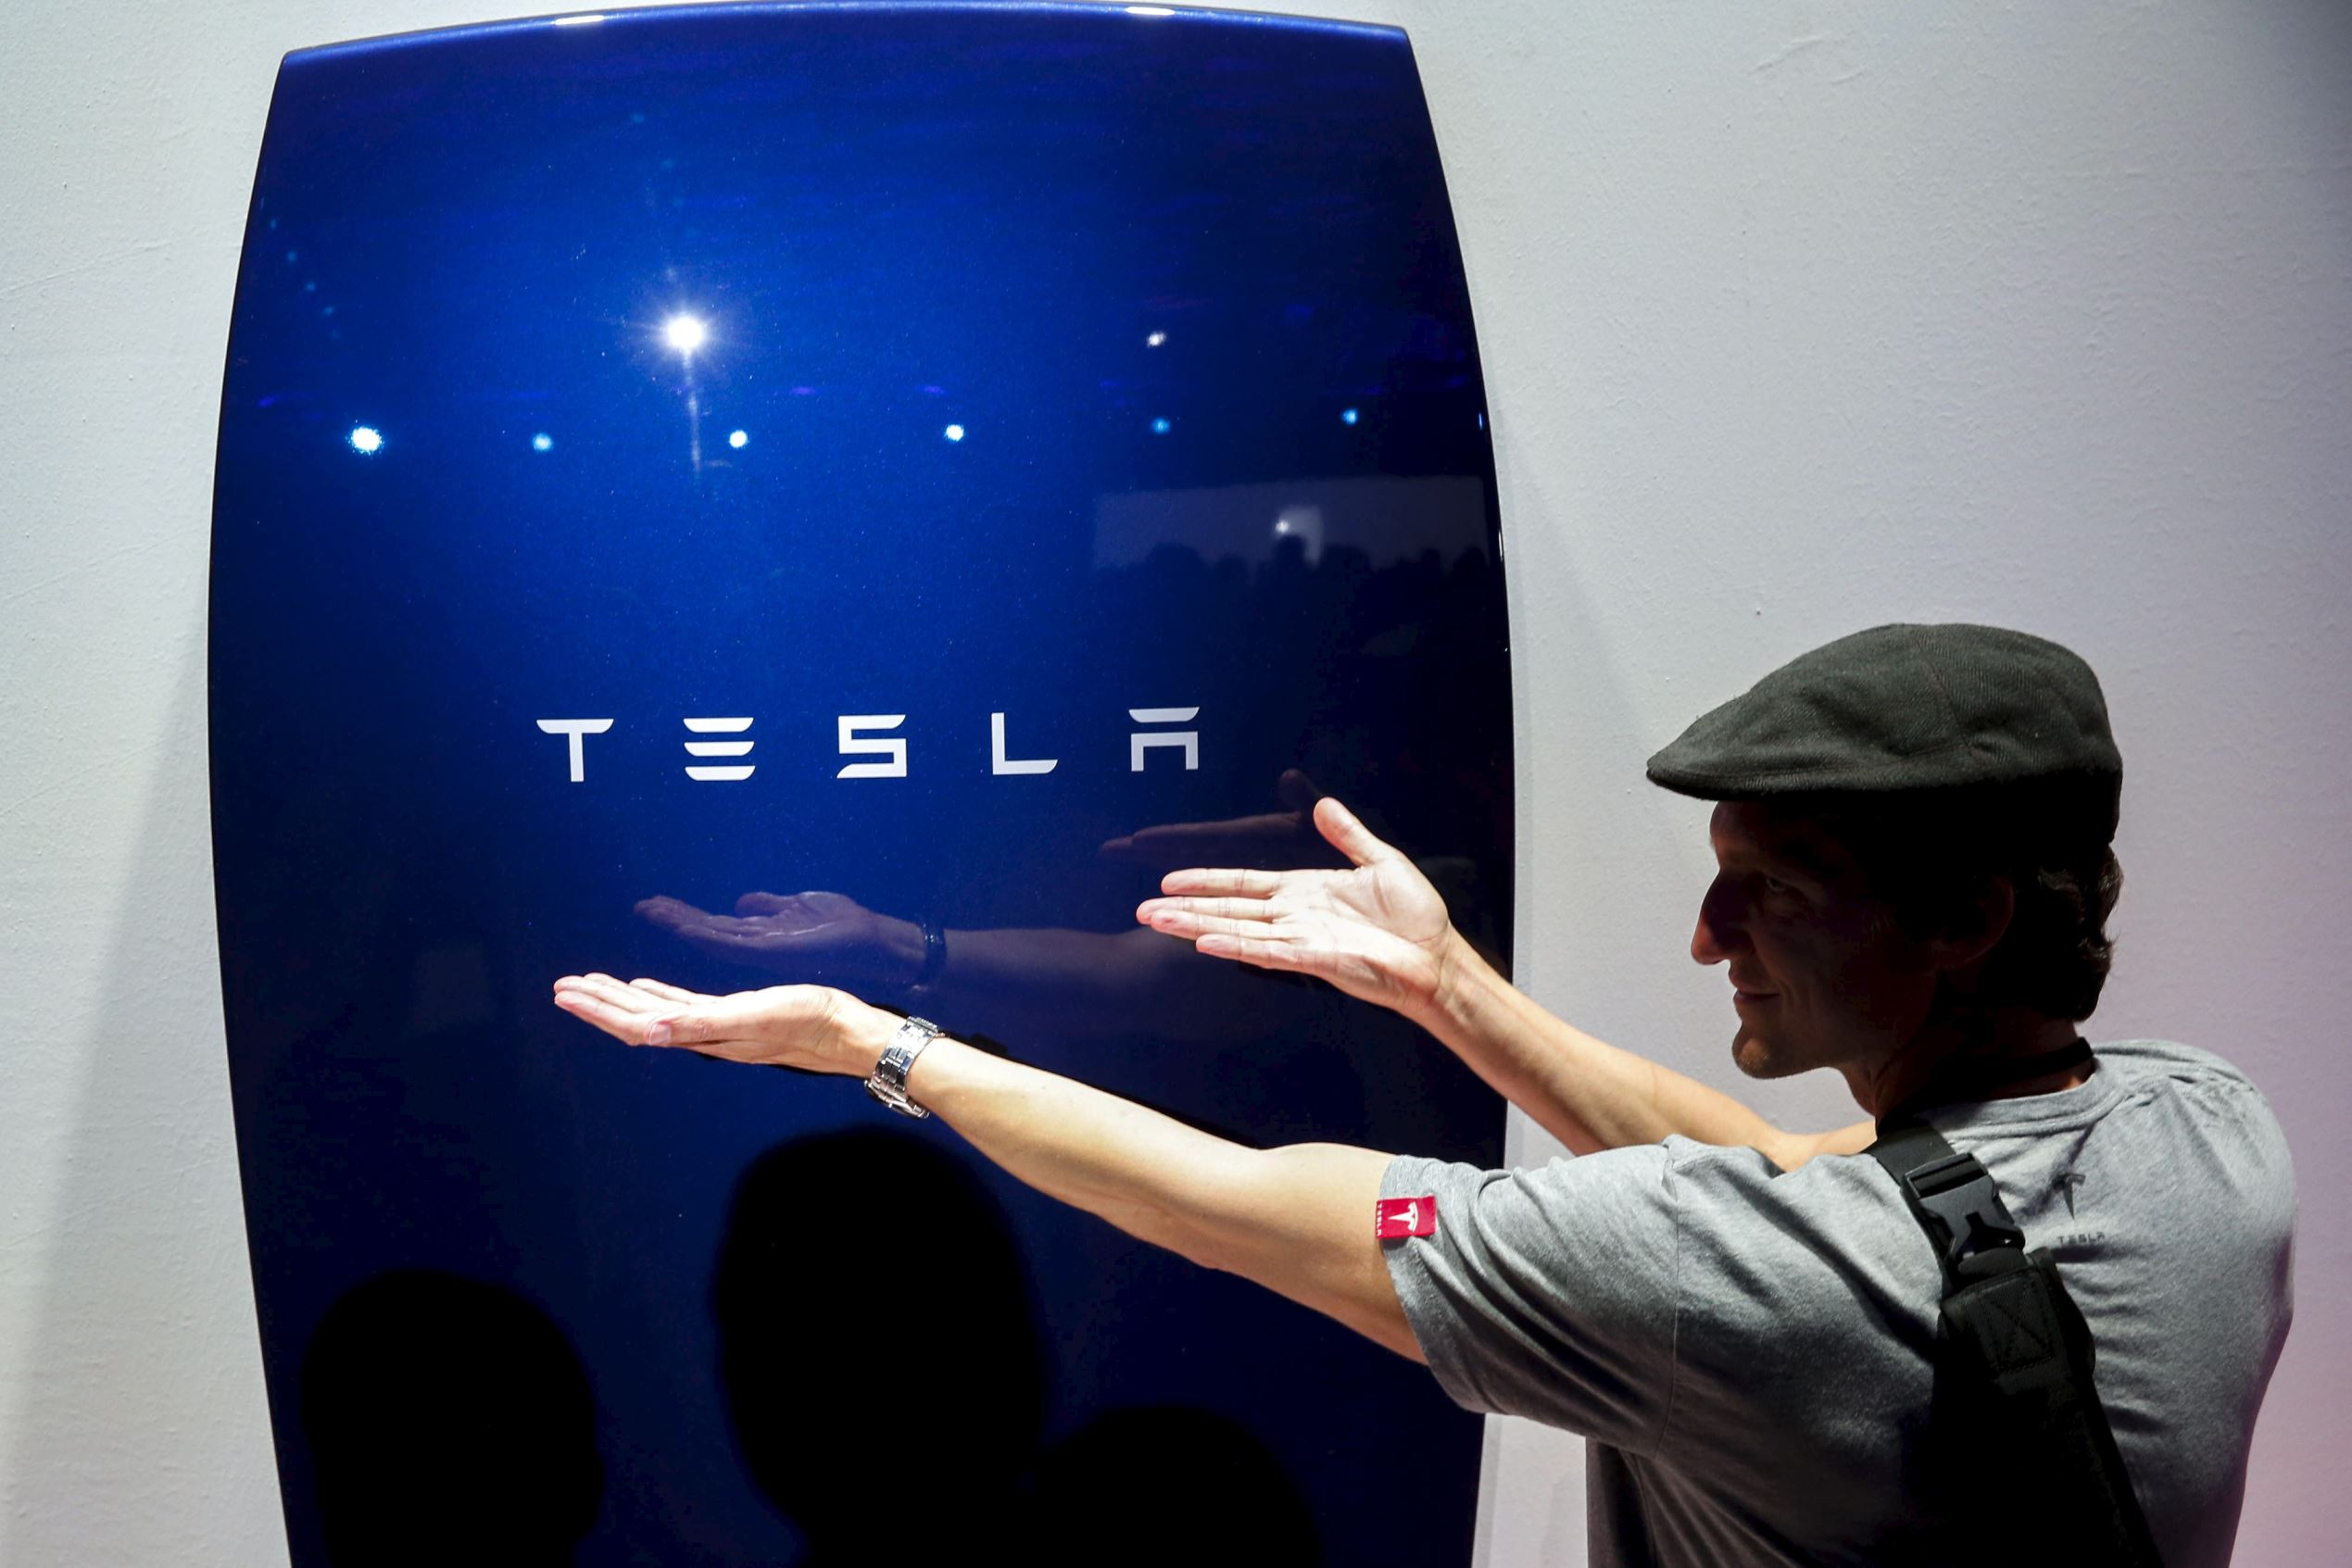 Attendees take pictures of the new Tesla Energy Powerwall Home Battery during an event at Tesla Motors in Hawthorne, Calif.